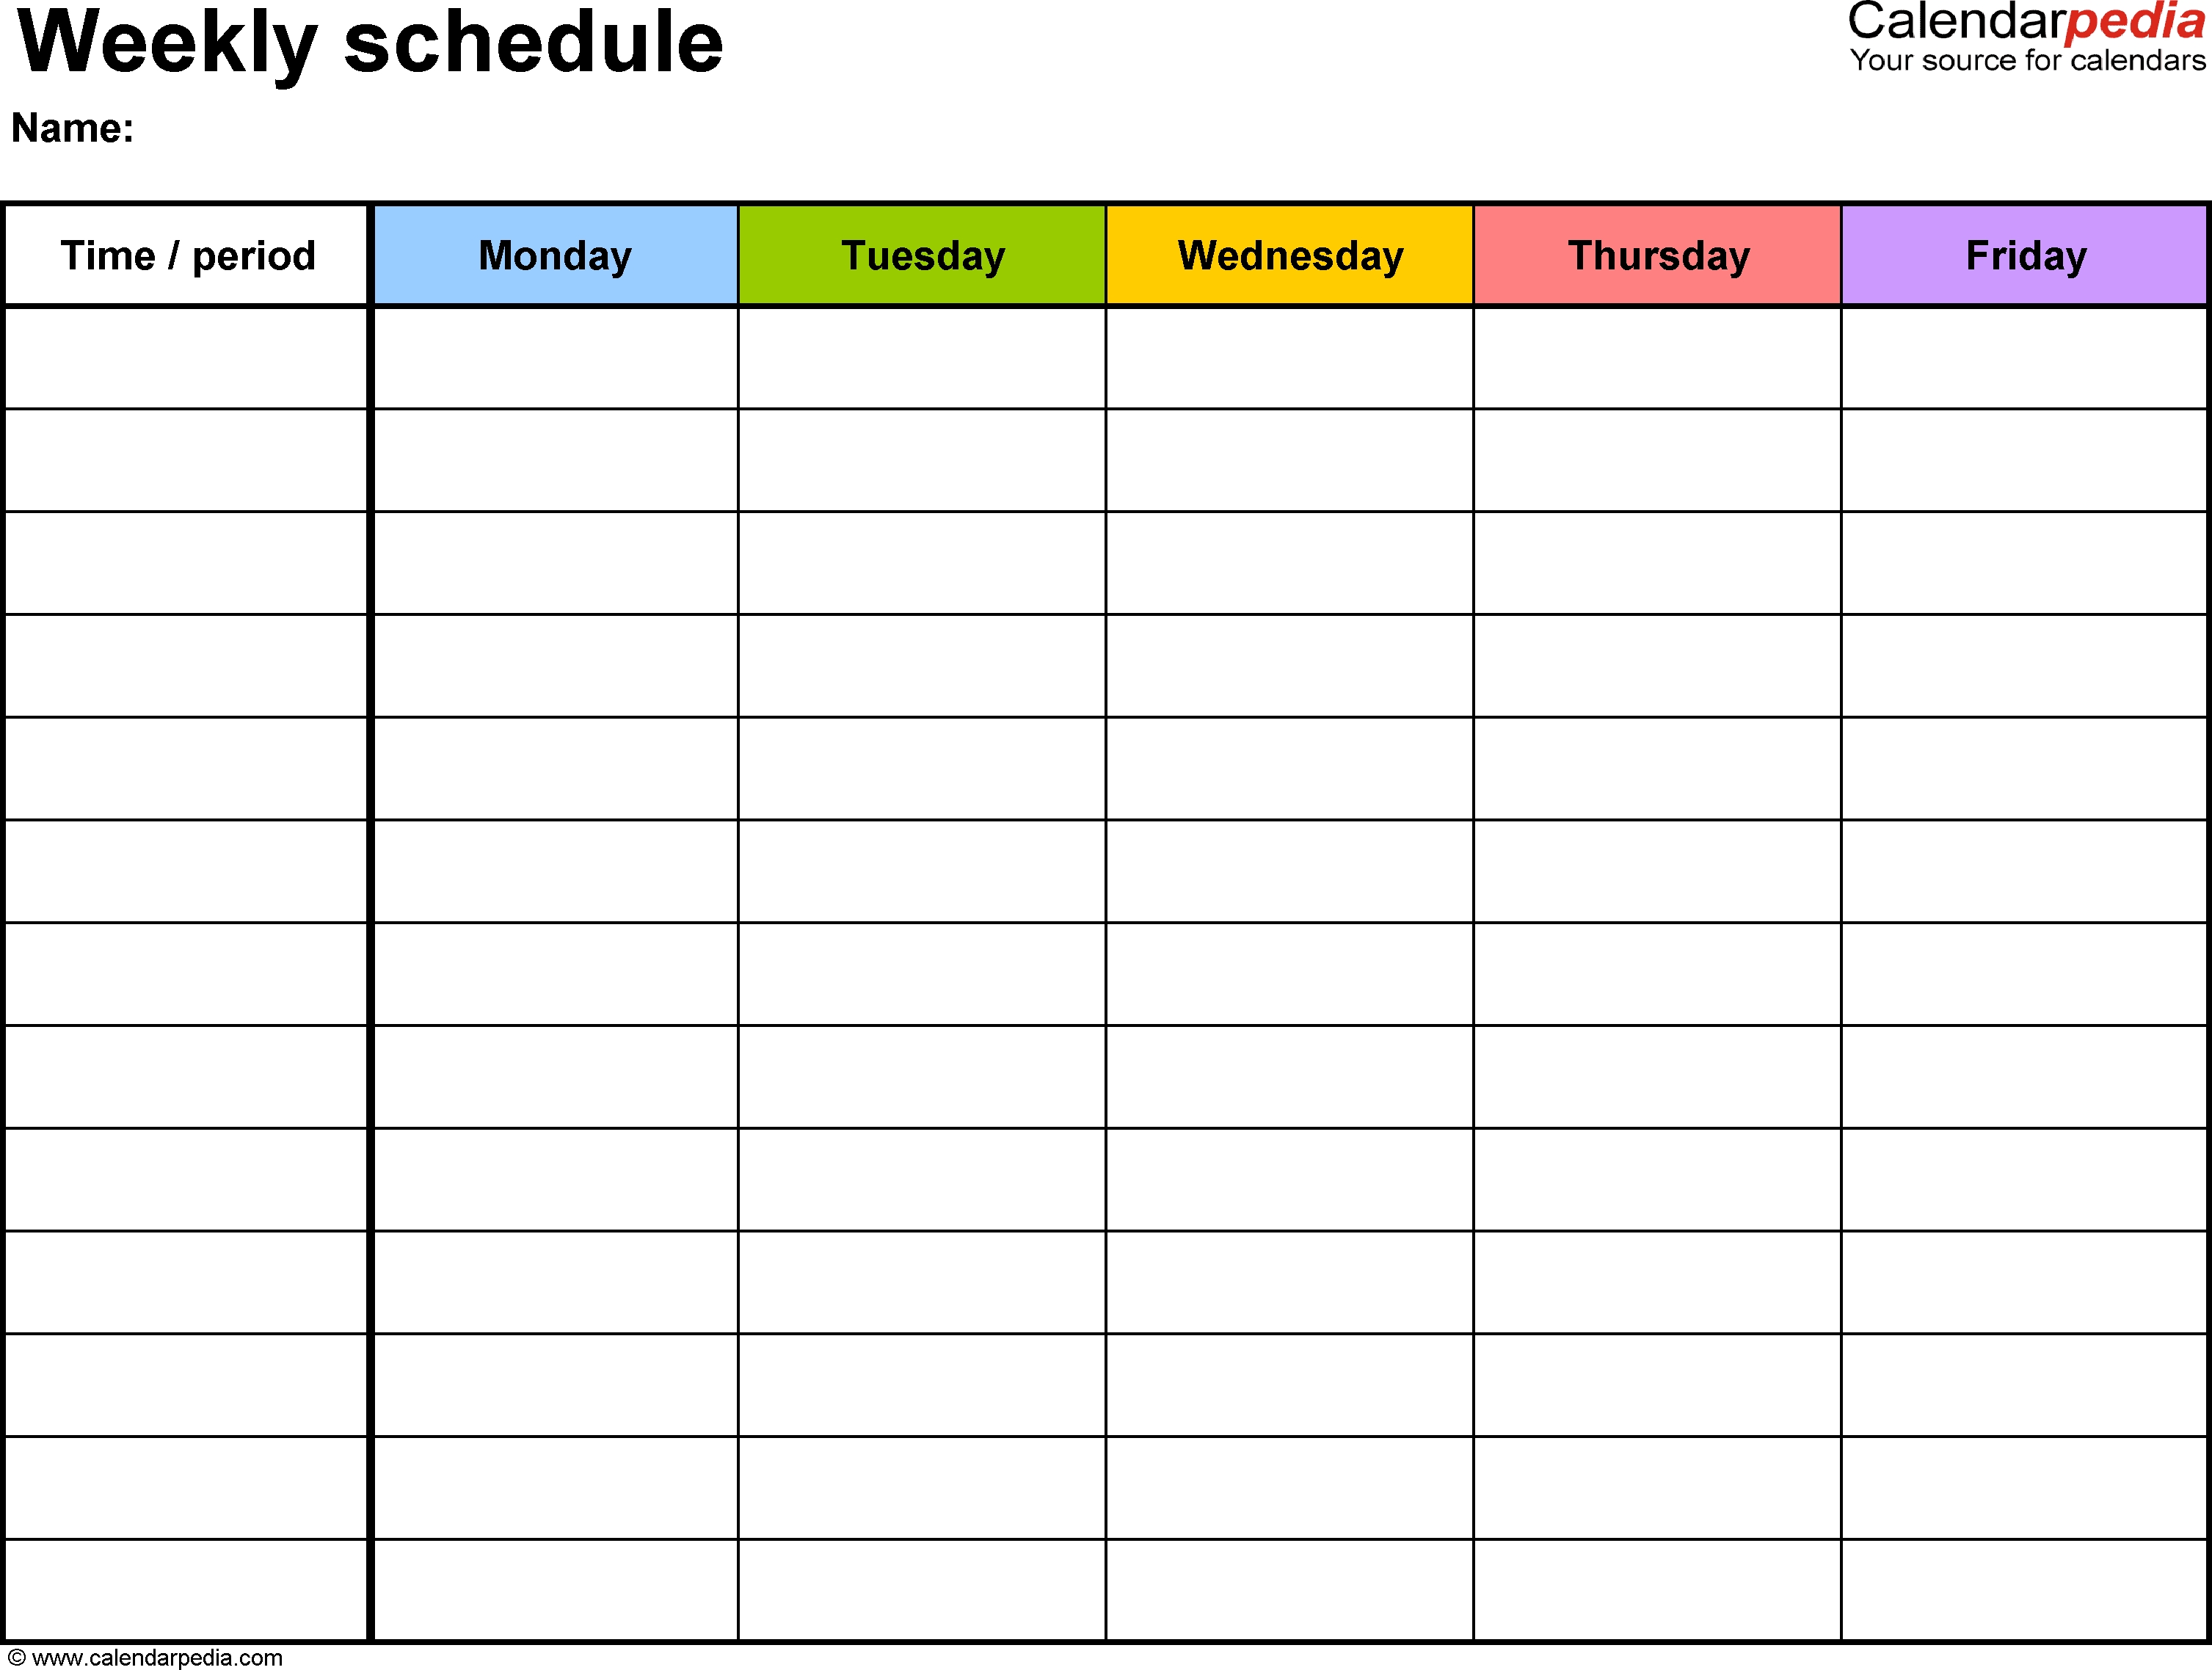 Free Weekly Schedule Templates For Word - 18 Templates in Day By Day And Weekly Printable Calendars